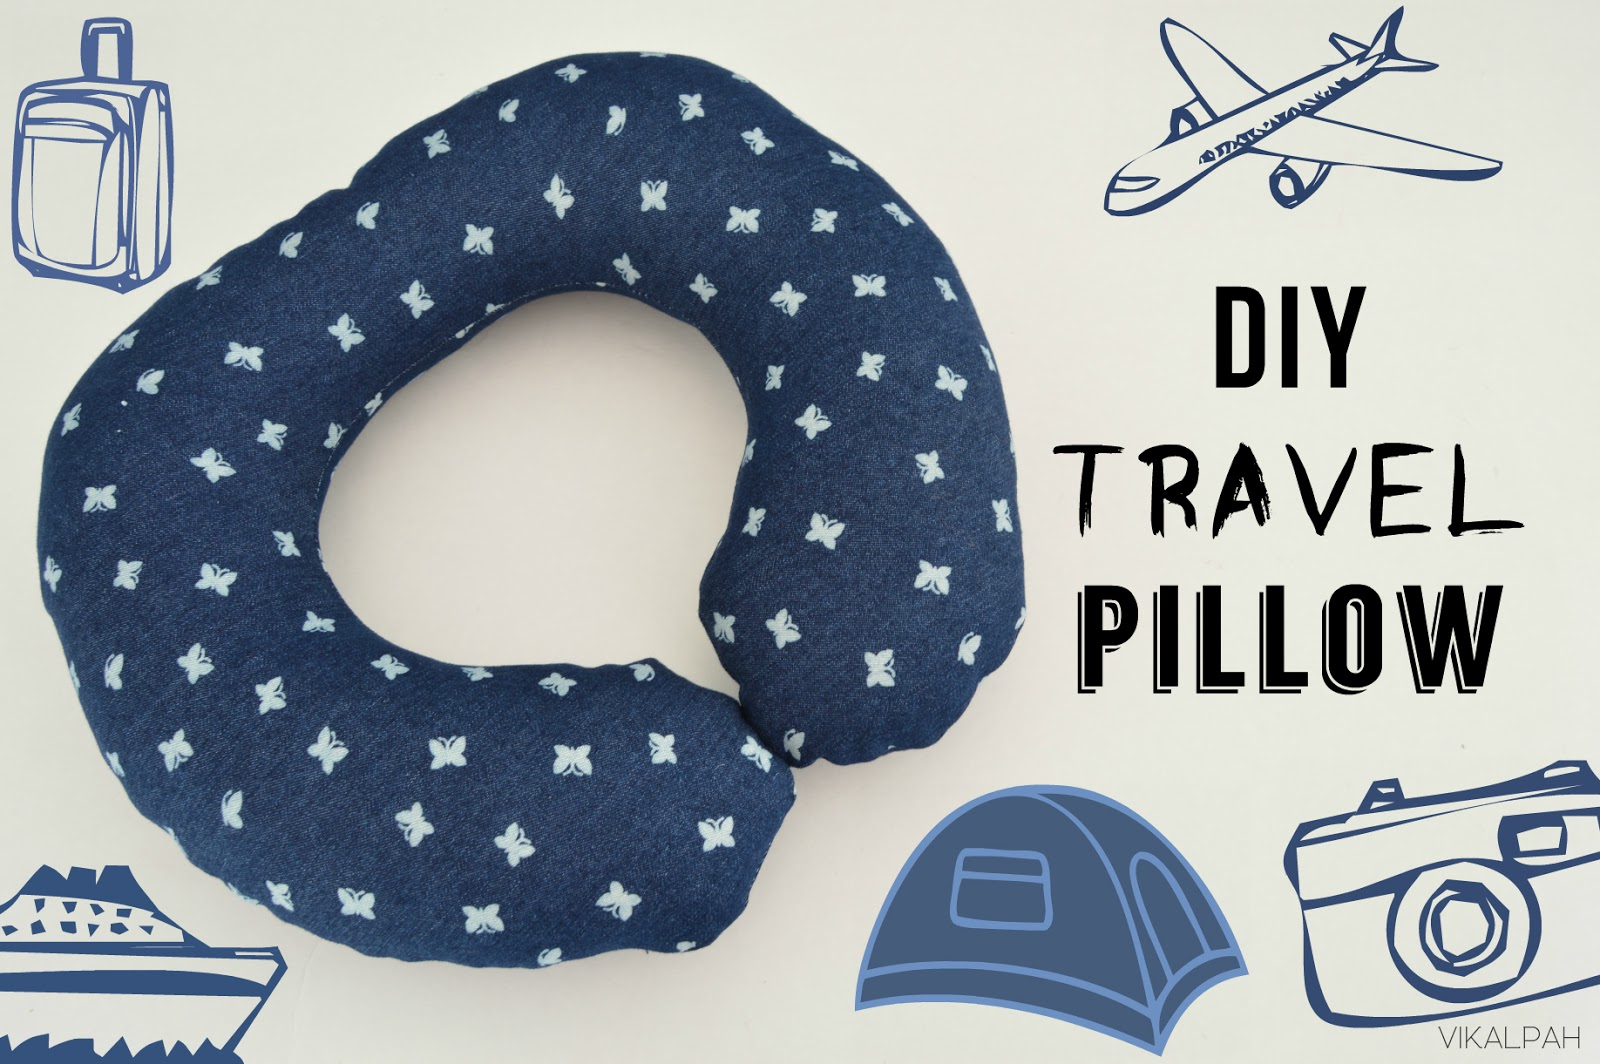 Easy Sew Neck Pillow: Vikalpah  DIY Travel Pillow (DIY Pattern included),